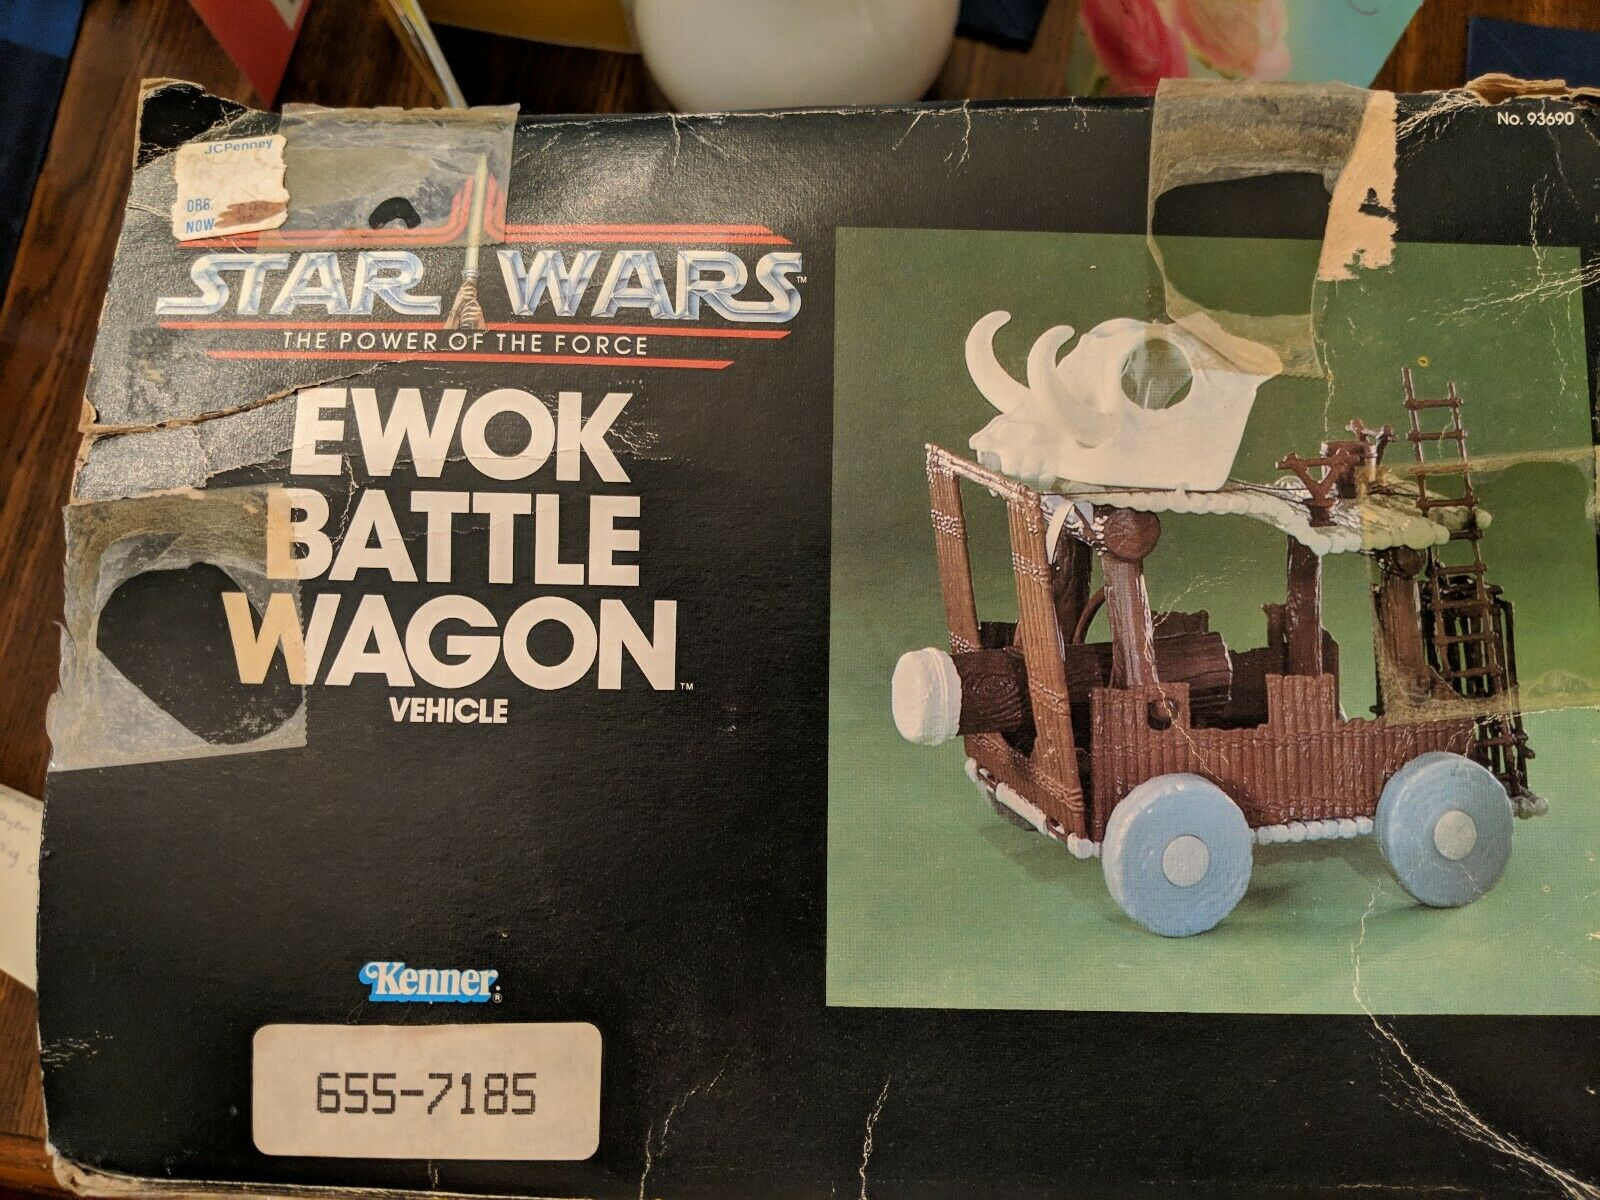 Star Wars Ewok Ewok Ewok Battle Wagon Vehicle d97b7a